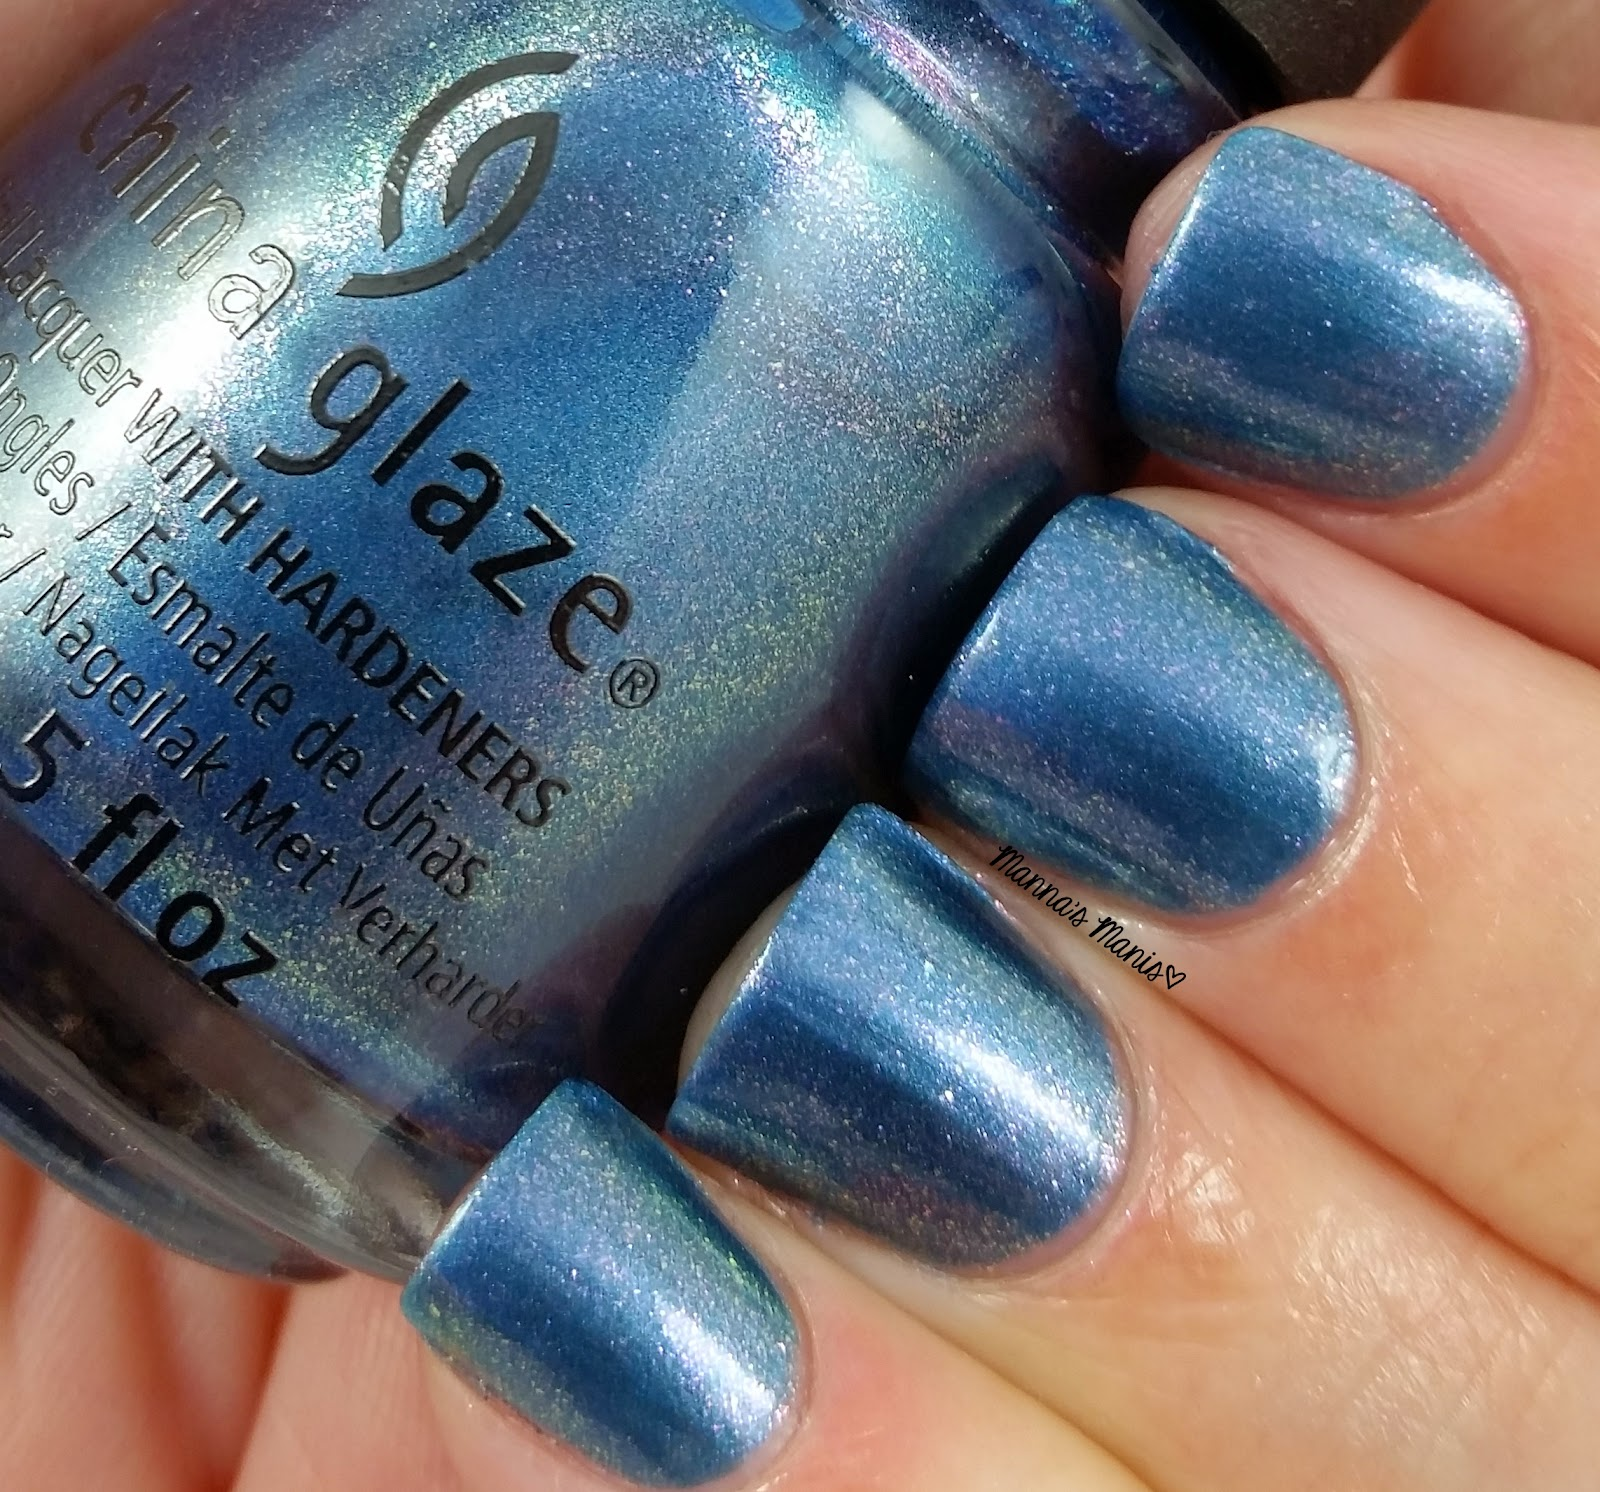 china glaze december to remember, a blue shimmer nail polish